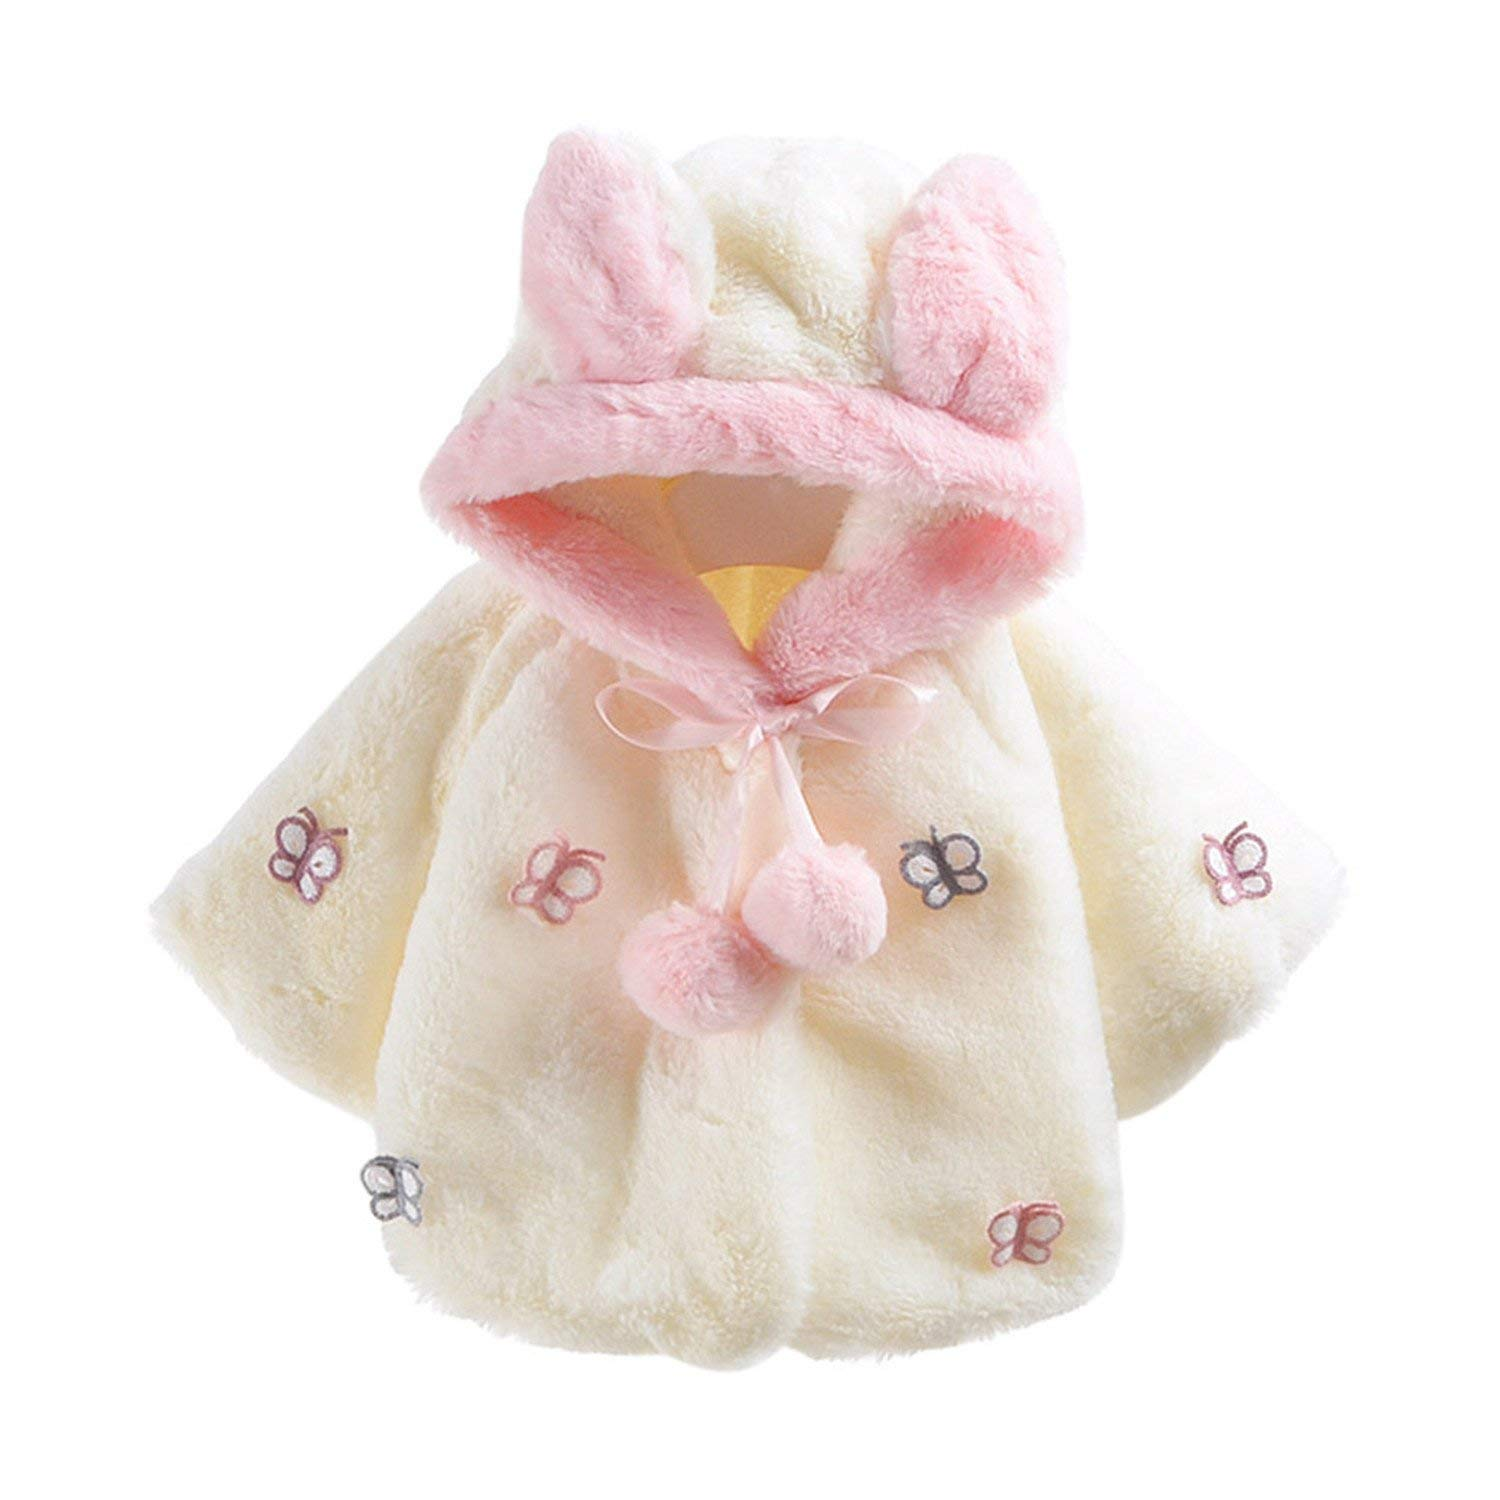 Samuel Roussel ChildrenS Winter Girl Coat Autumn Winter Hooded Coat Cloak Jacket Thick Warm Clothes